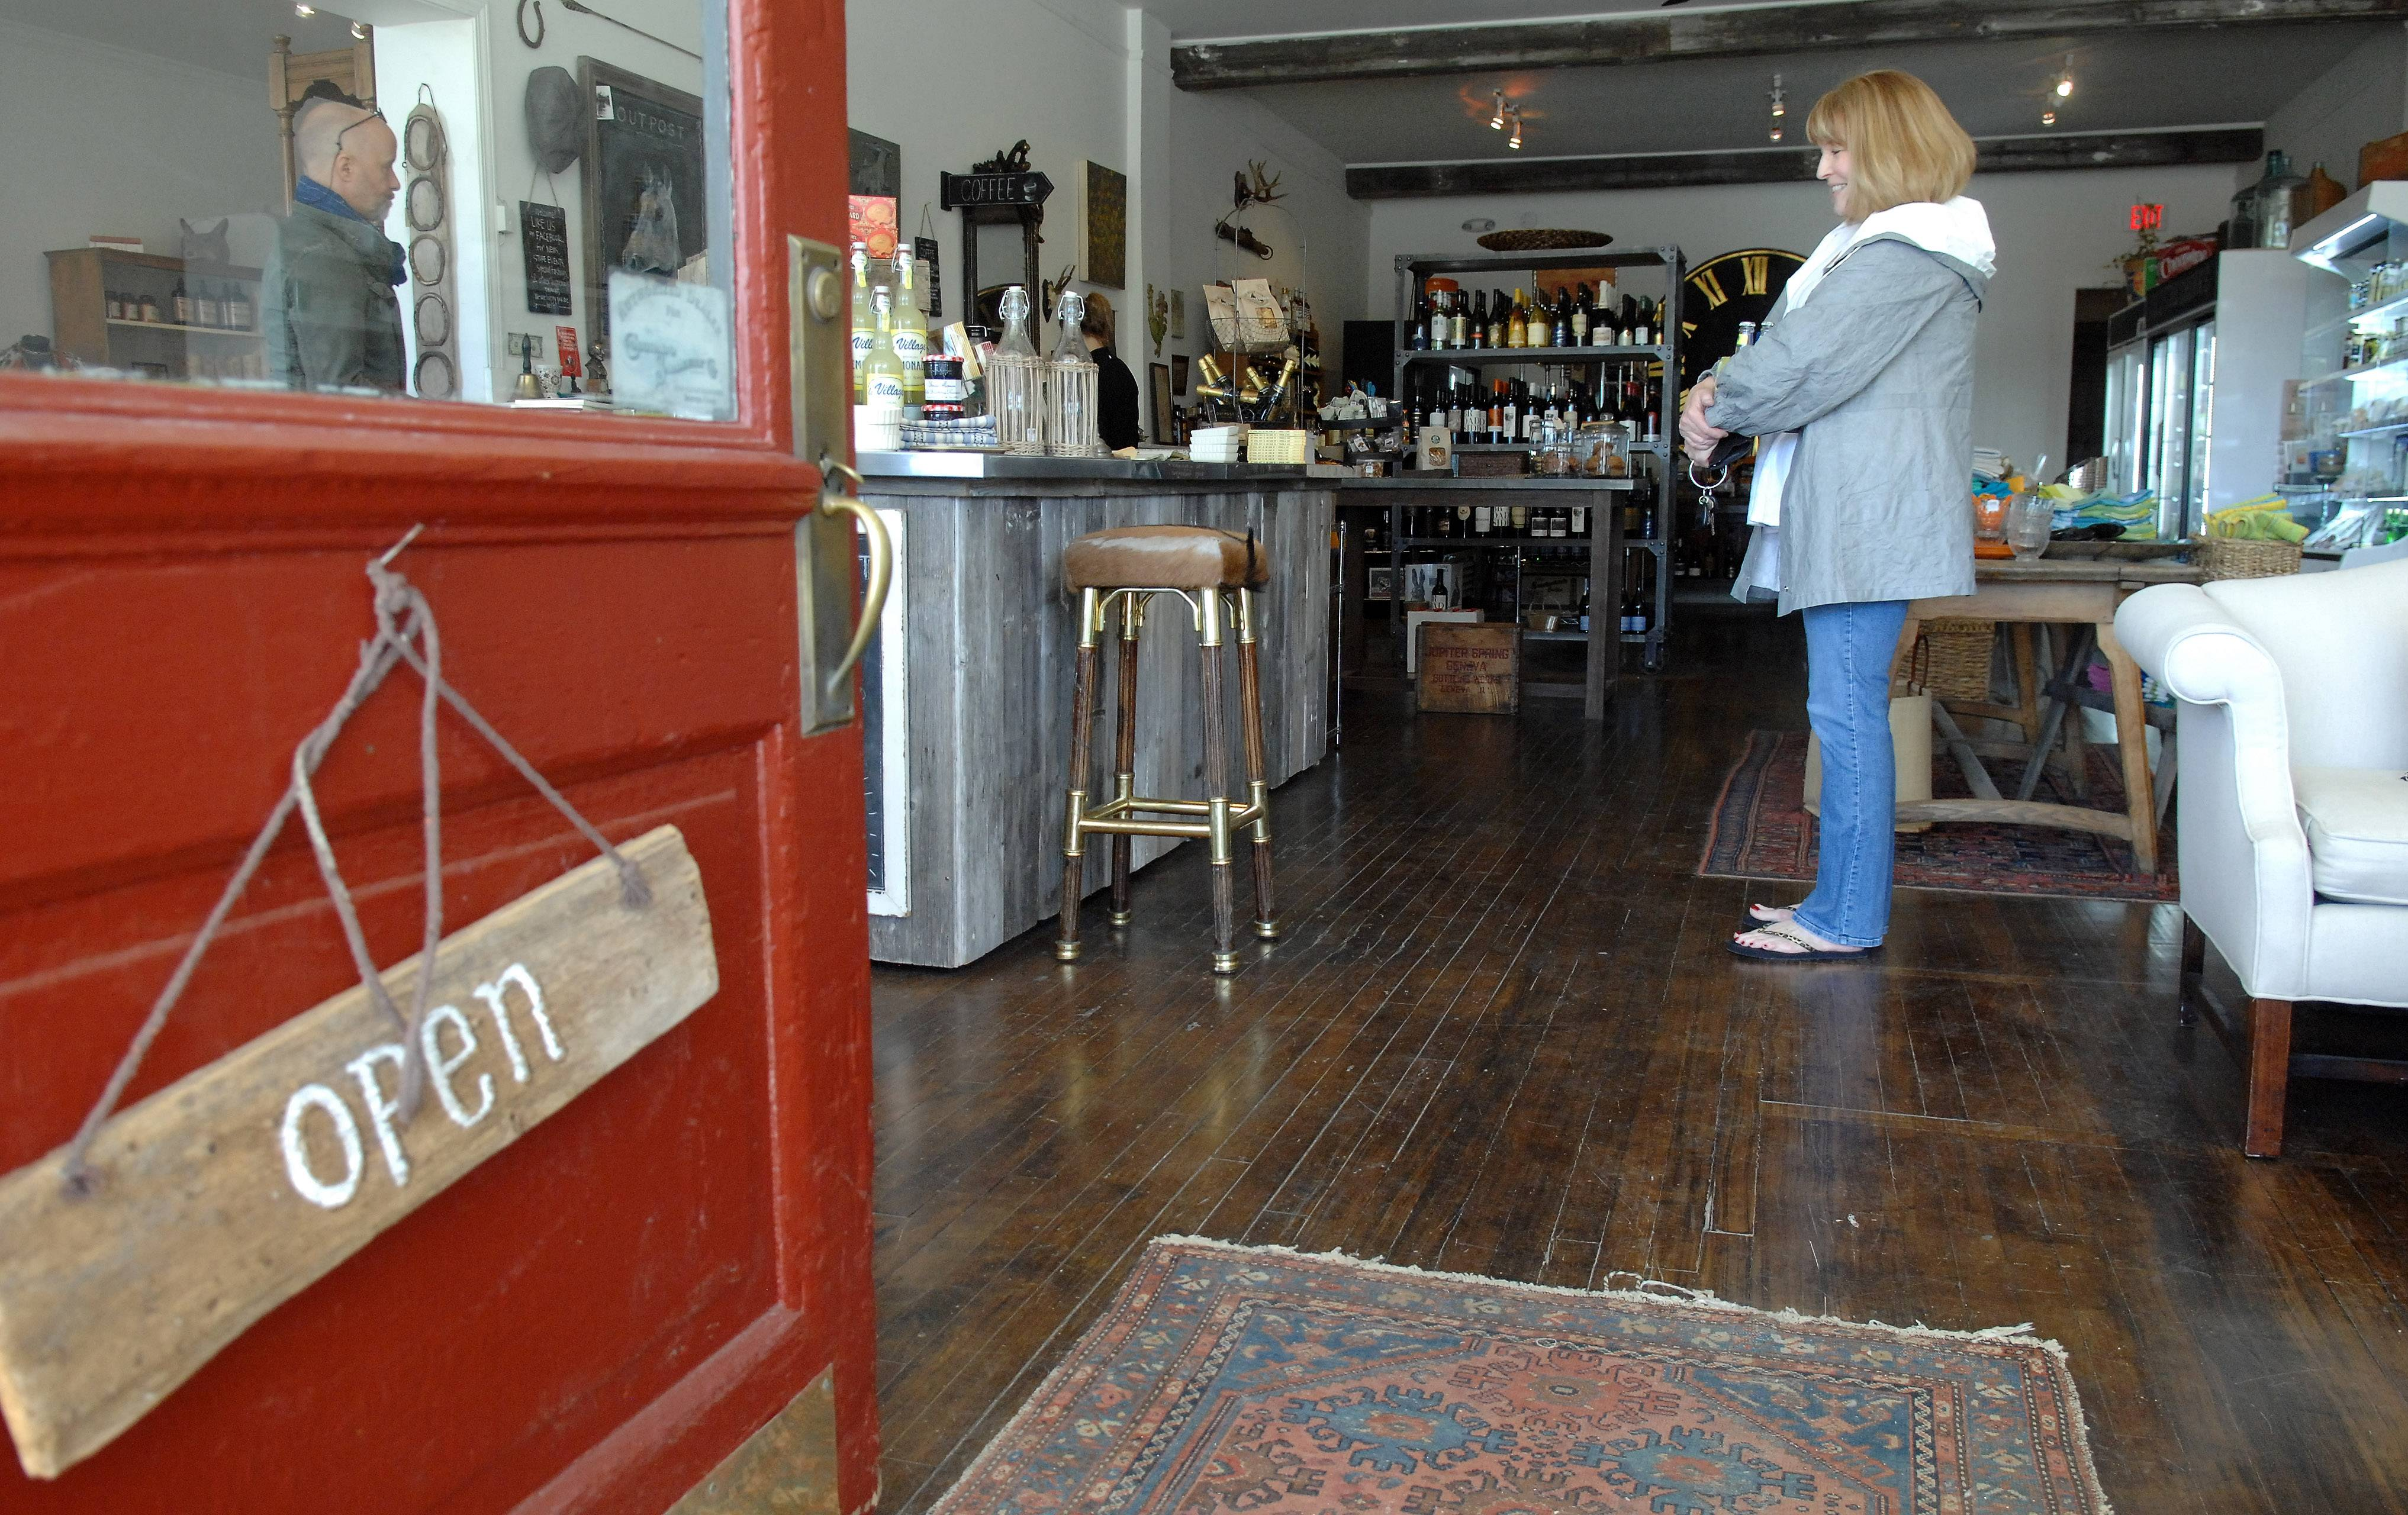 Karen Lando of St. Charles talks with owner Joe Vajarsky after making a purchase at the Outpost General Store in Wayne. Vajarsky and his wife, Caroline Scheeler, opened the store last September.